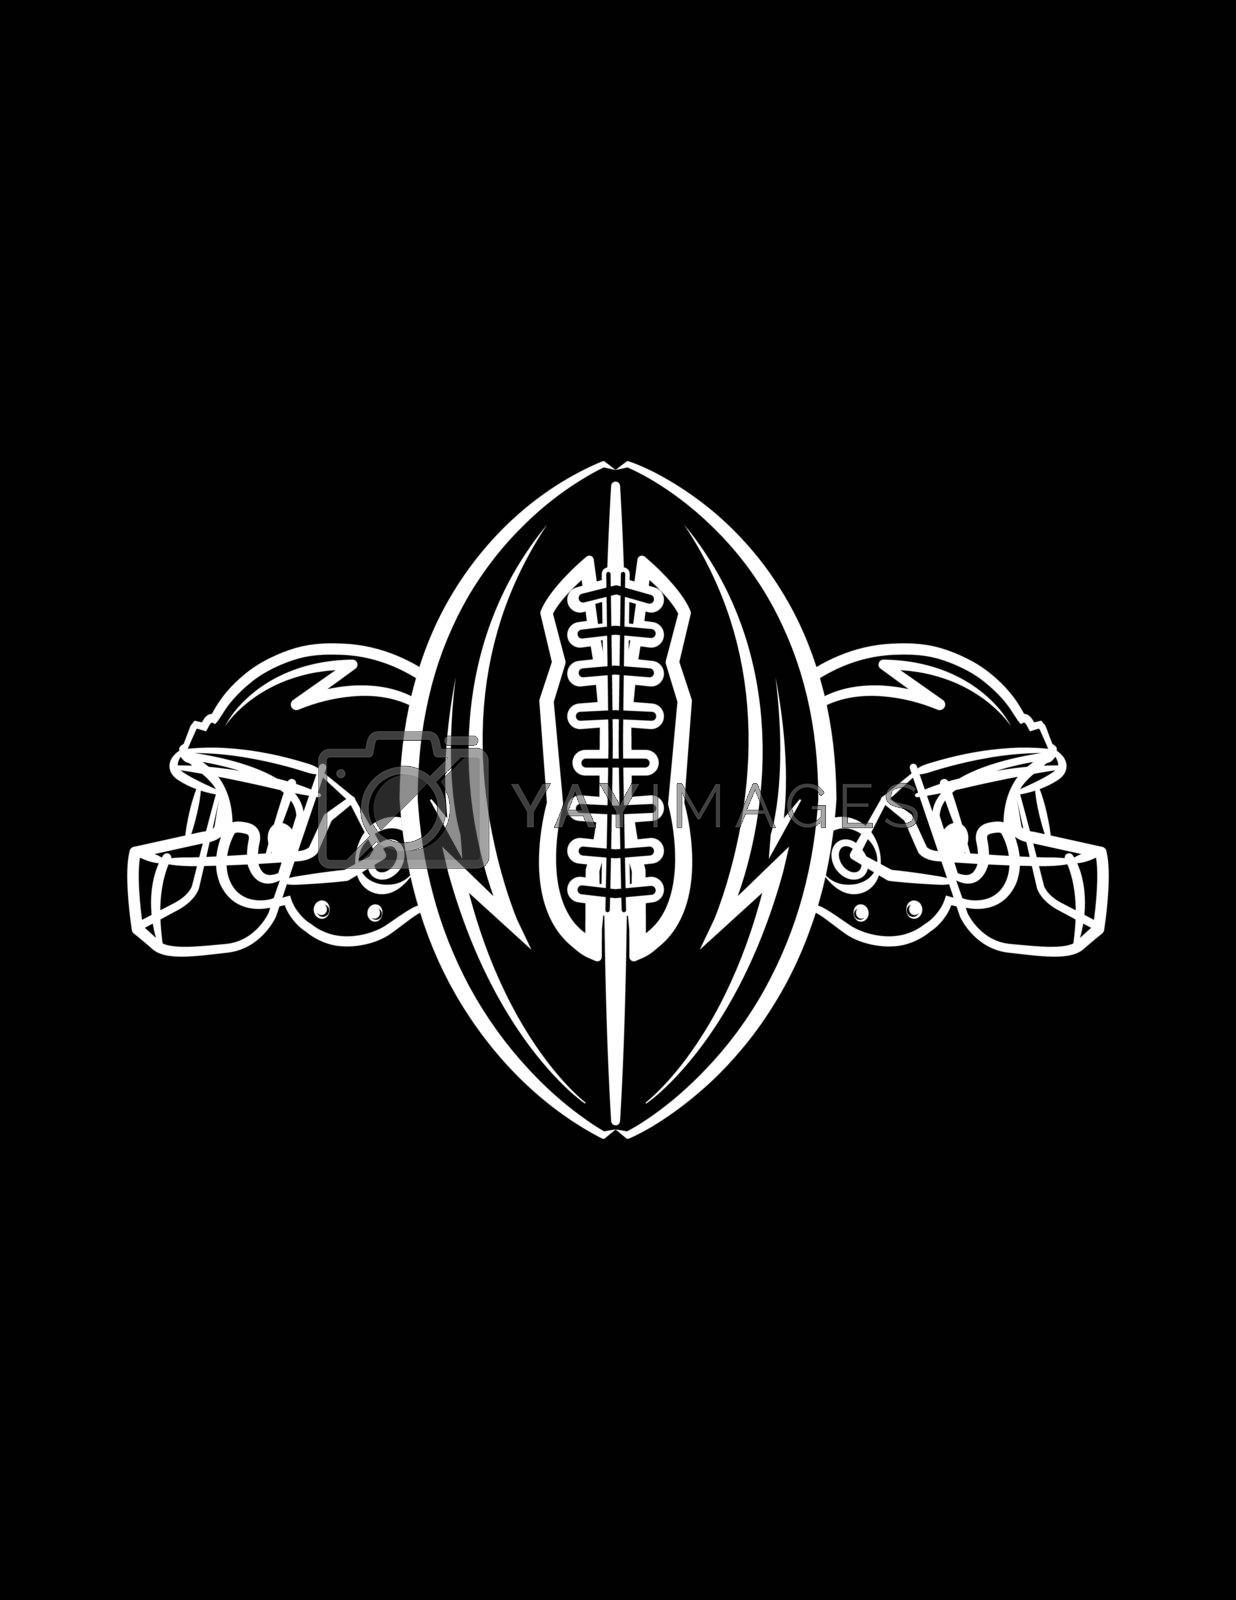 A black and white American Football ball and helmets icon illustration background. Vector EPS 10 available.